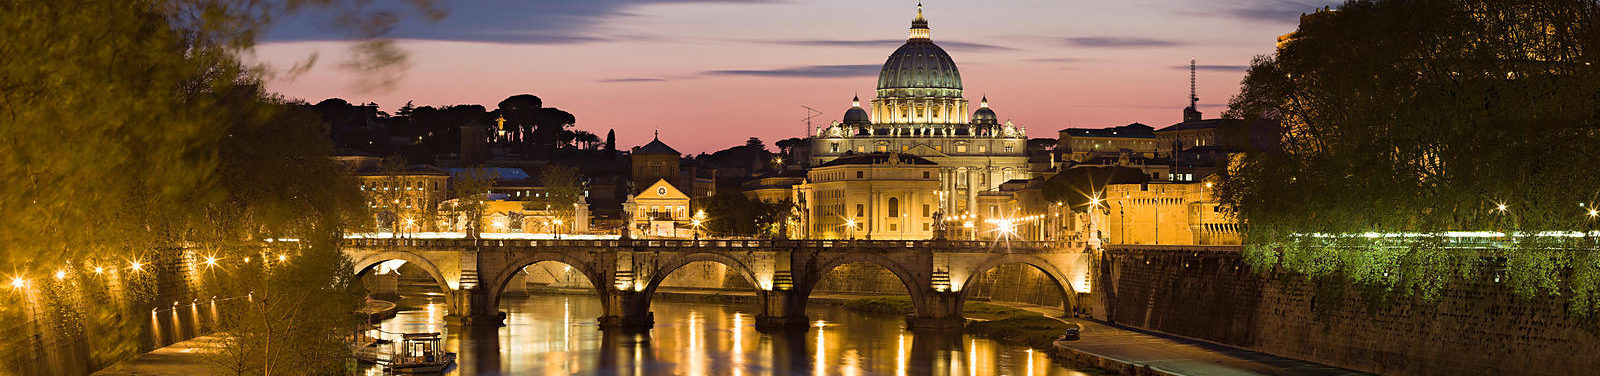 saint pierre rome